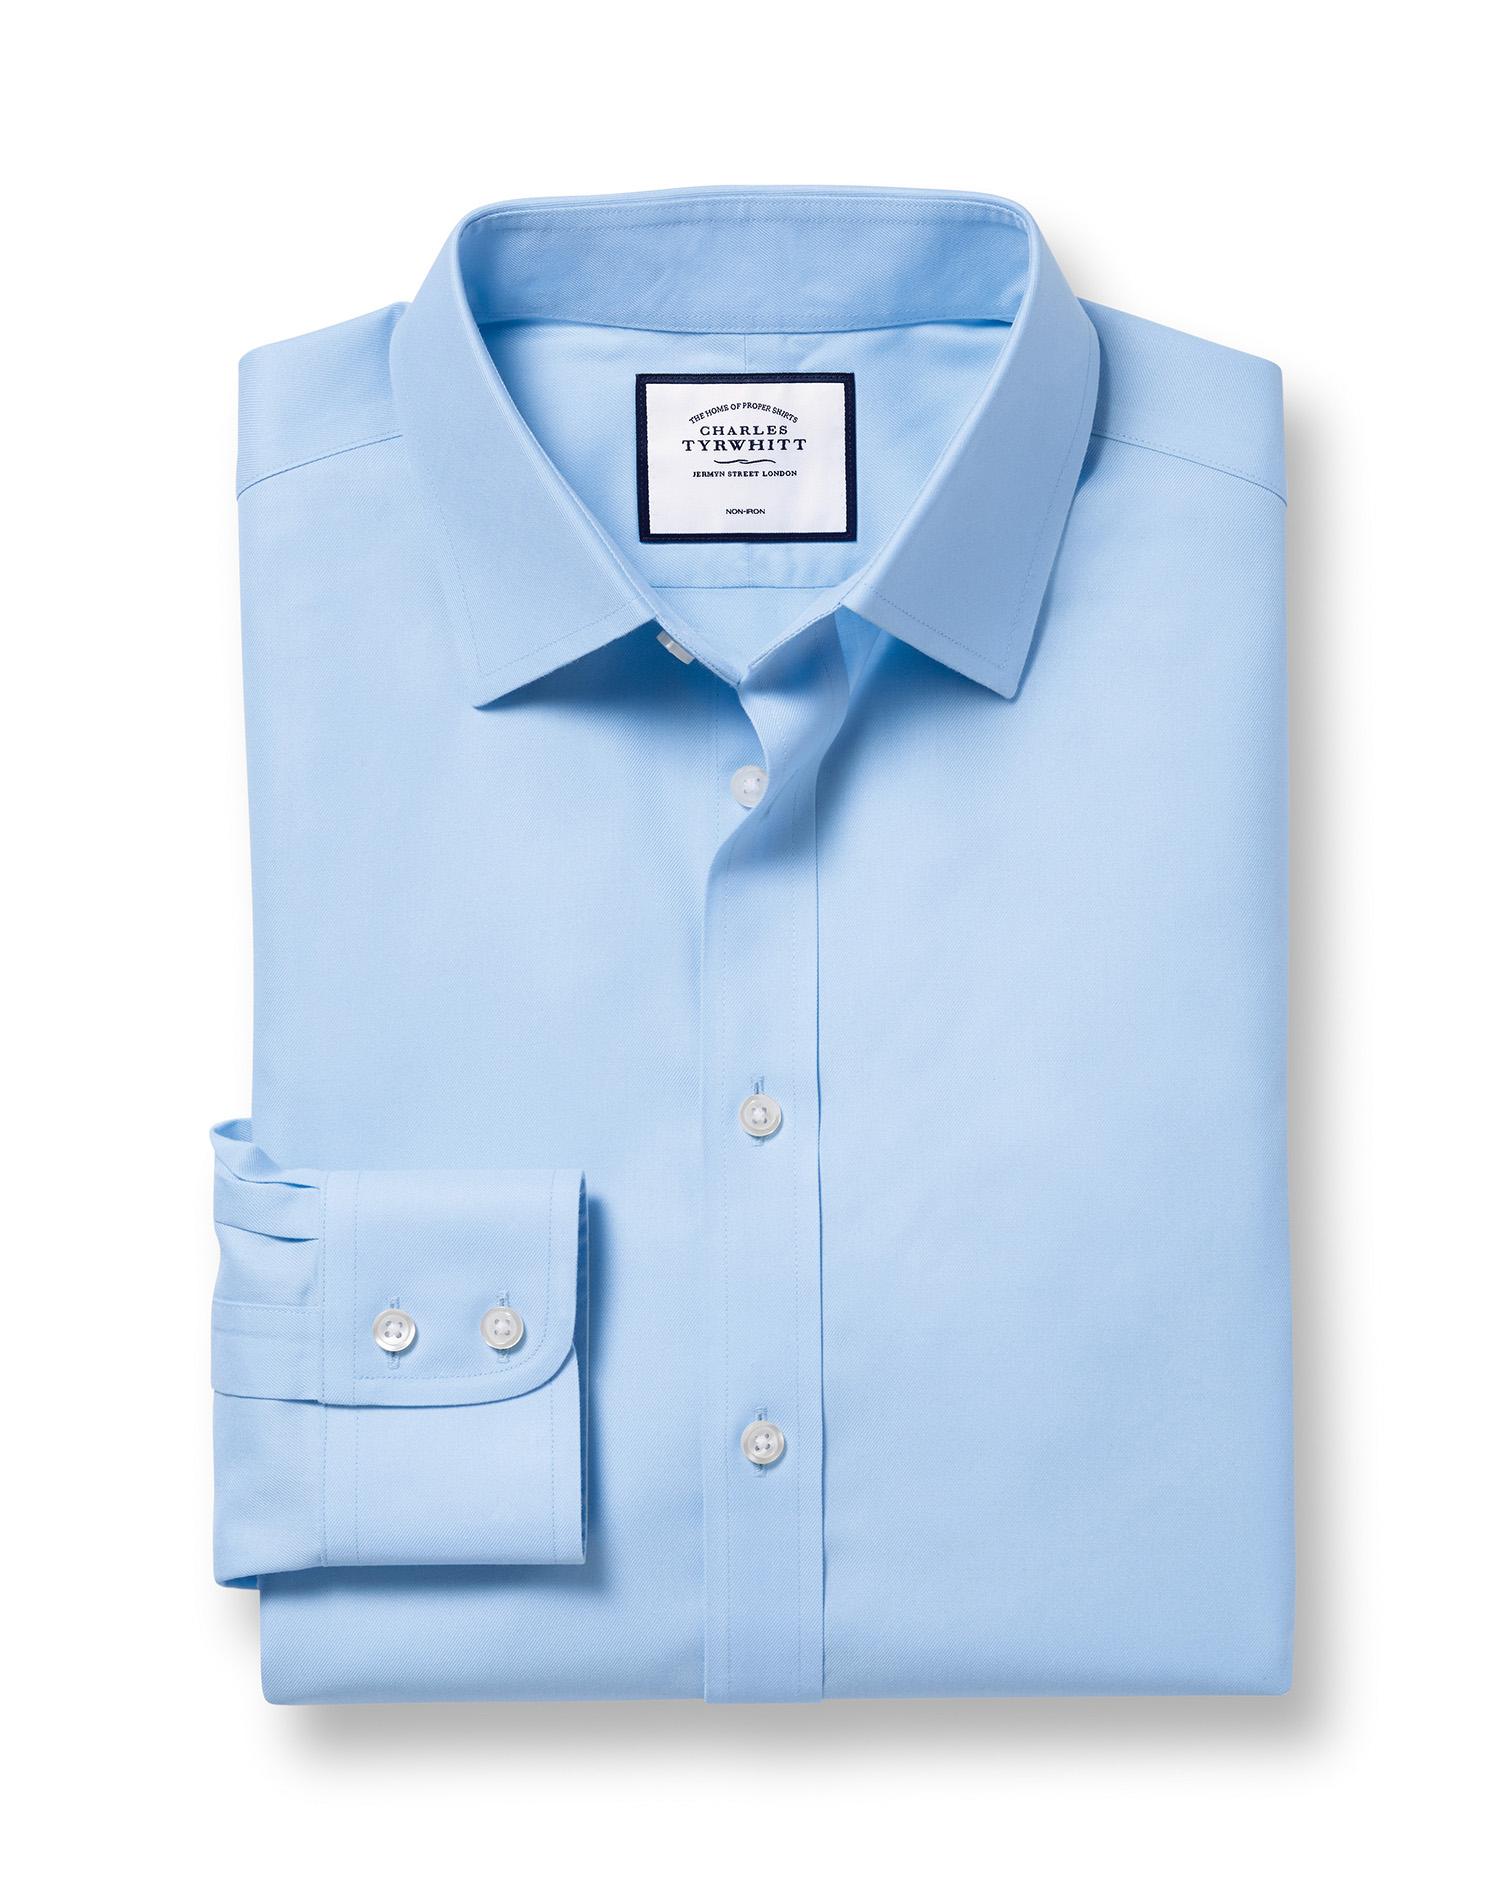 Extra Slim Fit Non-Iron Twill Sky Blue Cotton Formal Shirt Double Cuff Size 16.5/36 by Charles Tyrwh